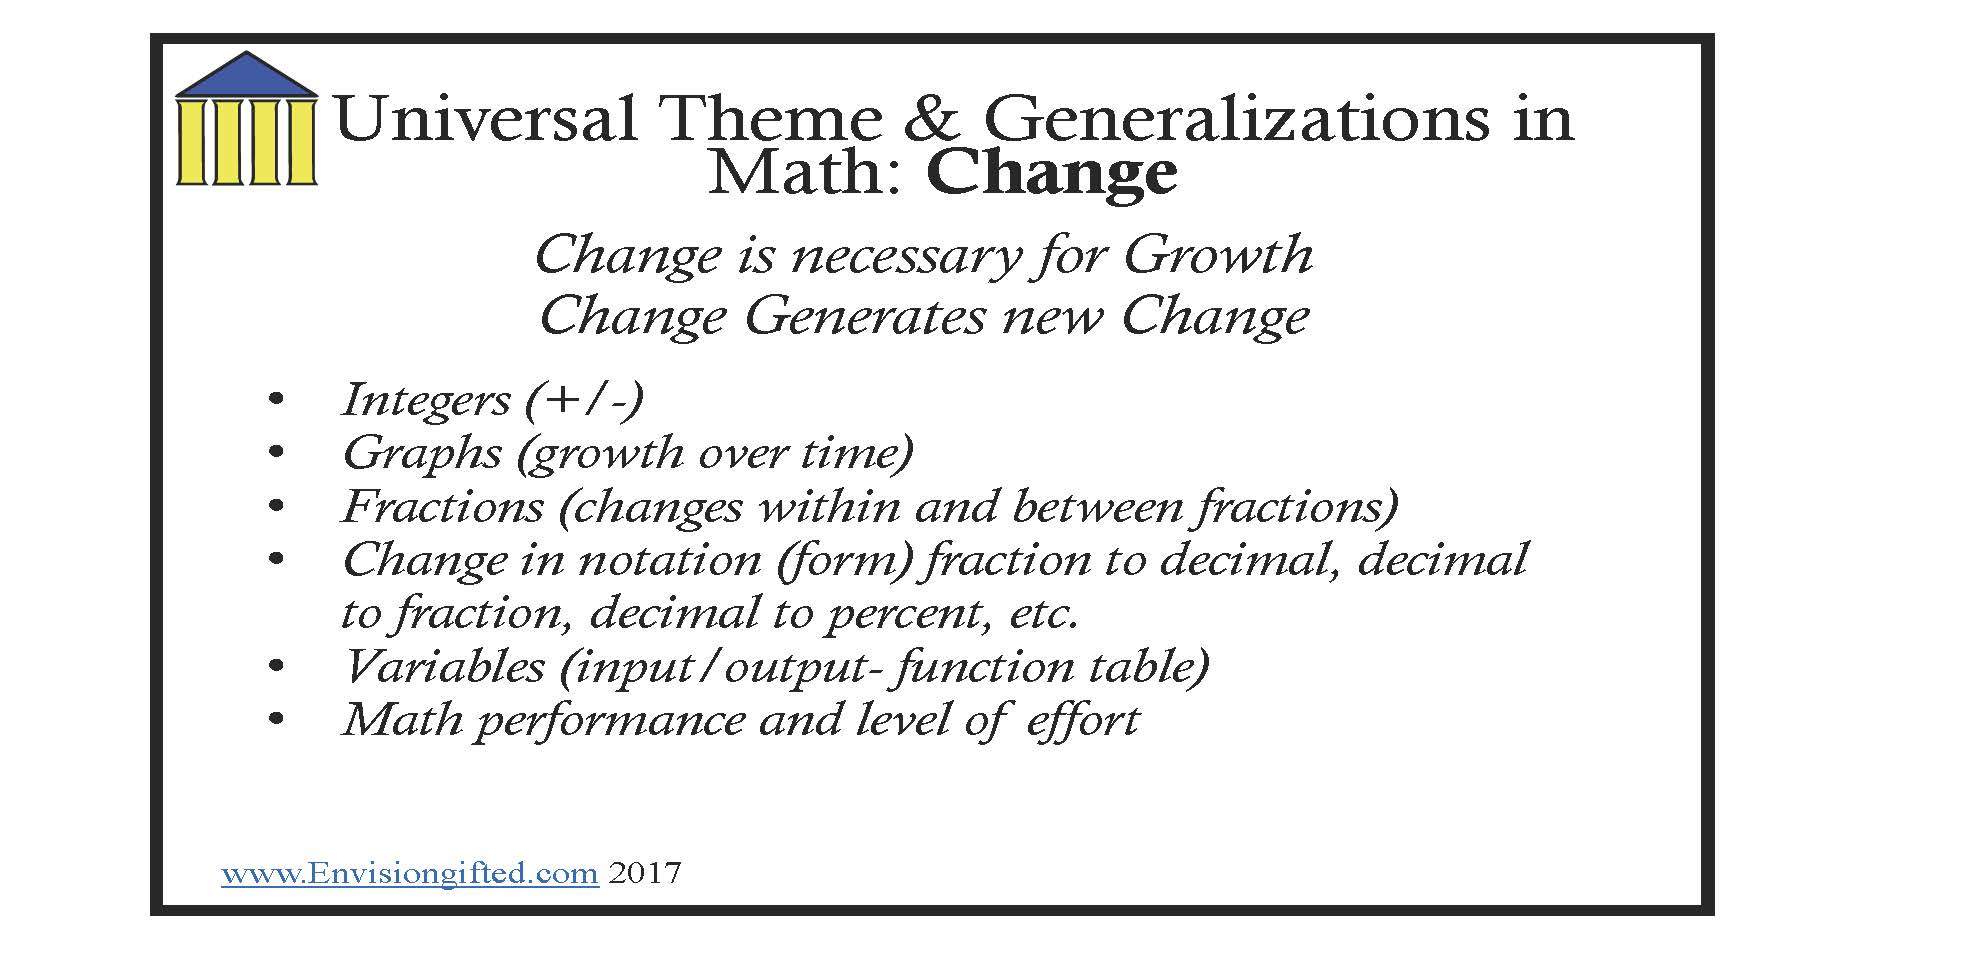 Envision Gifted. Universal Theme Change Math